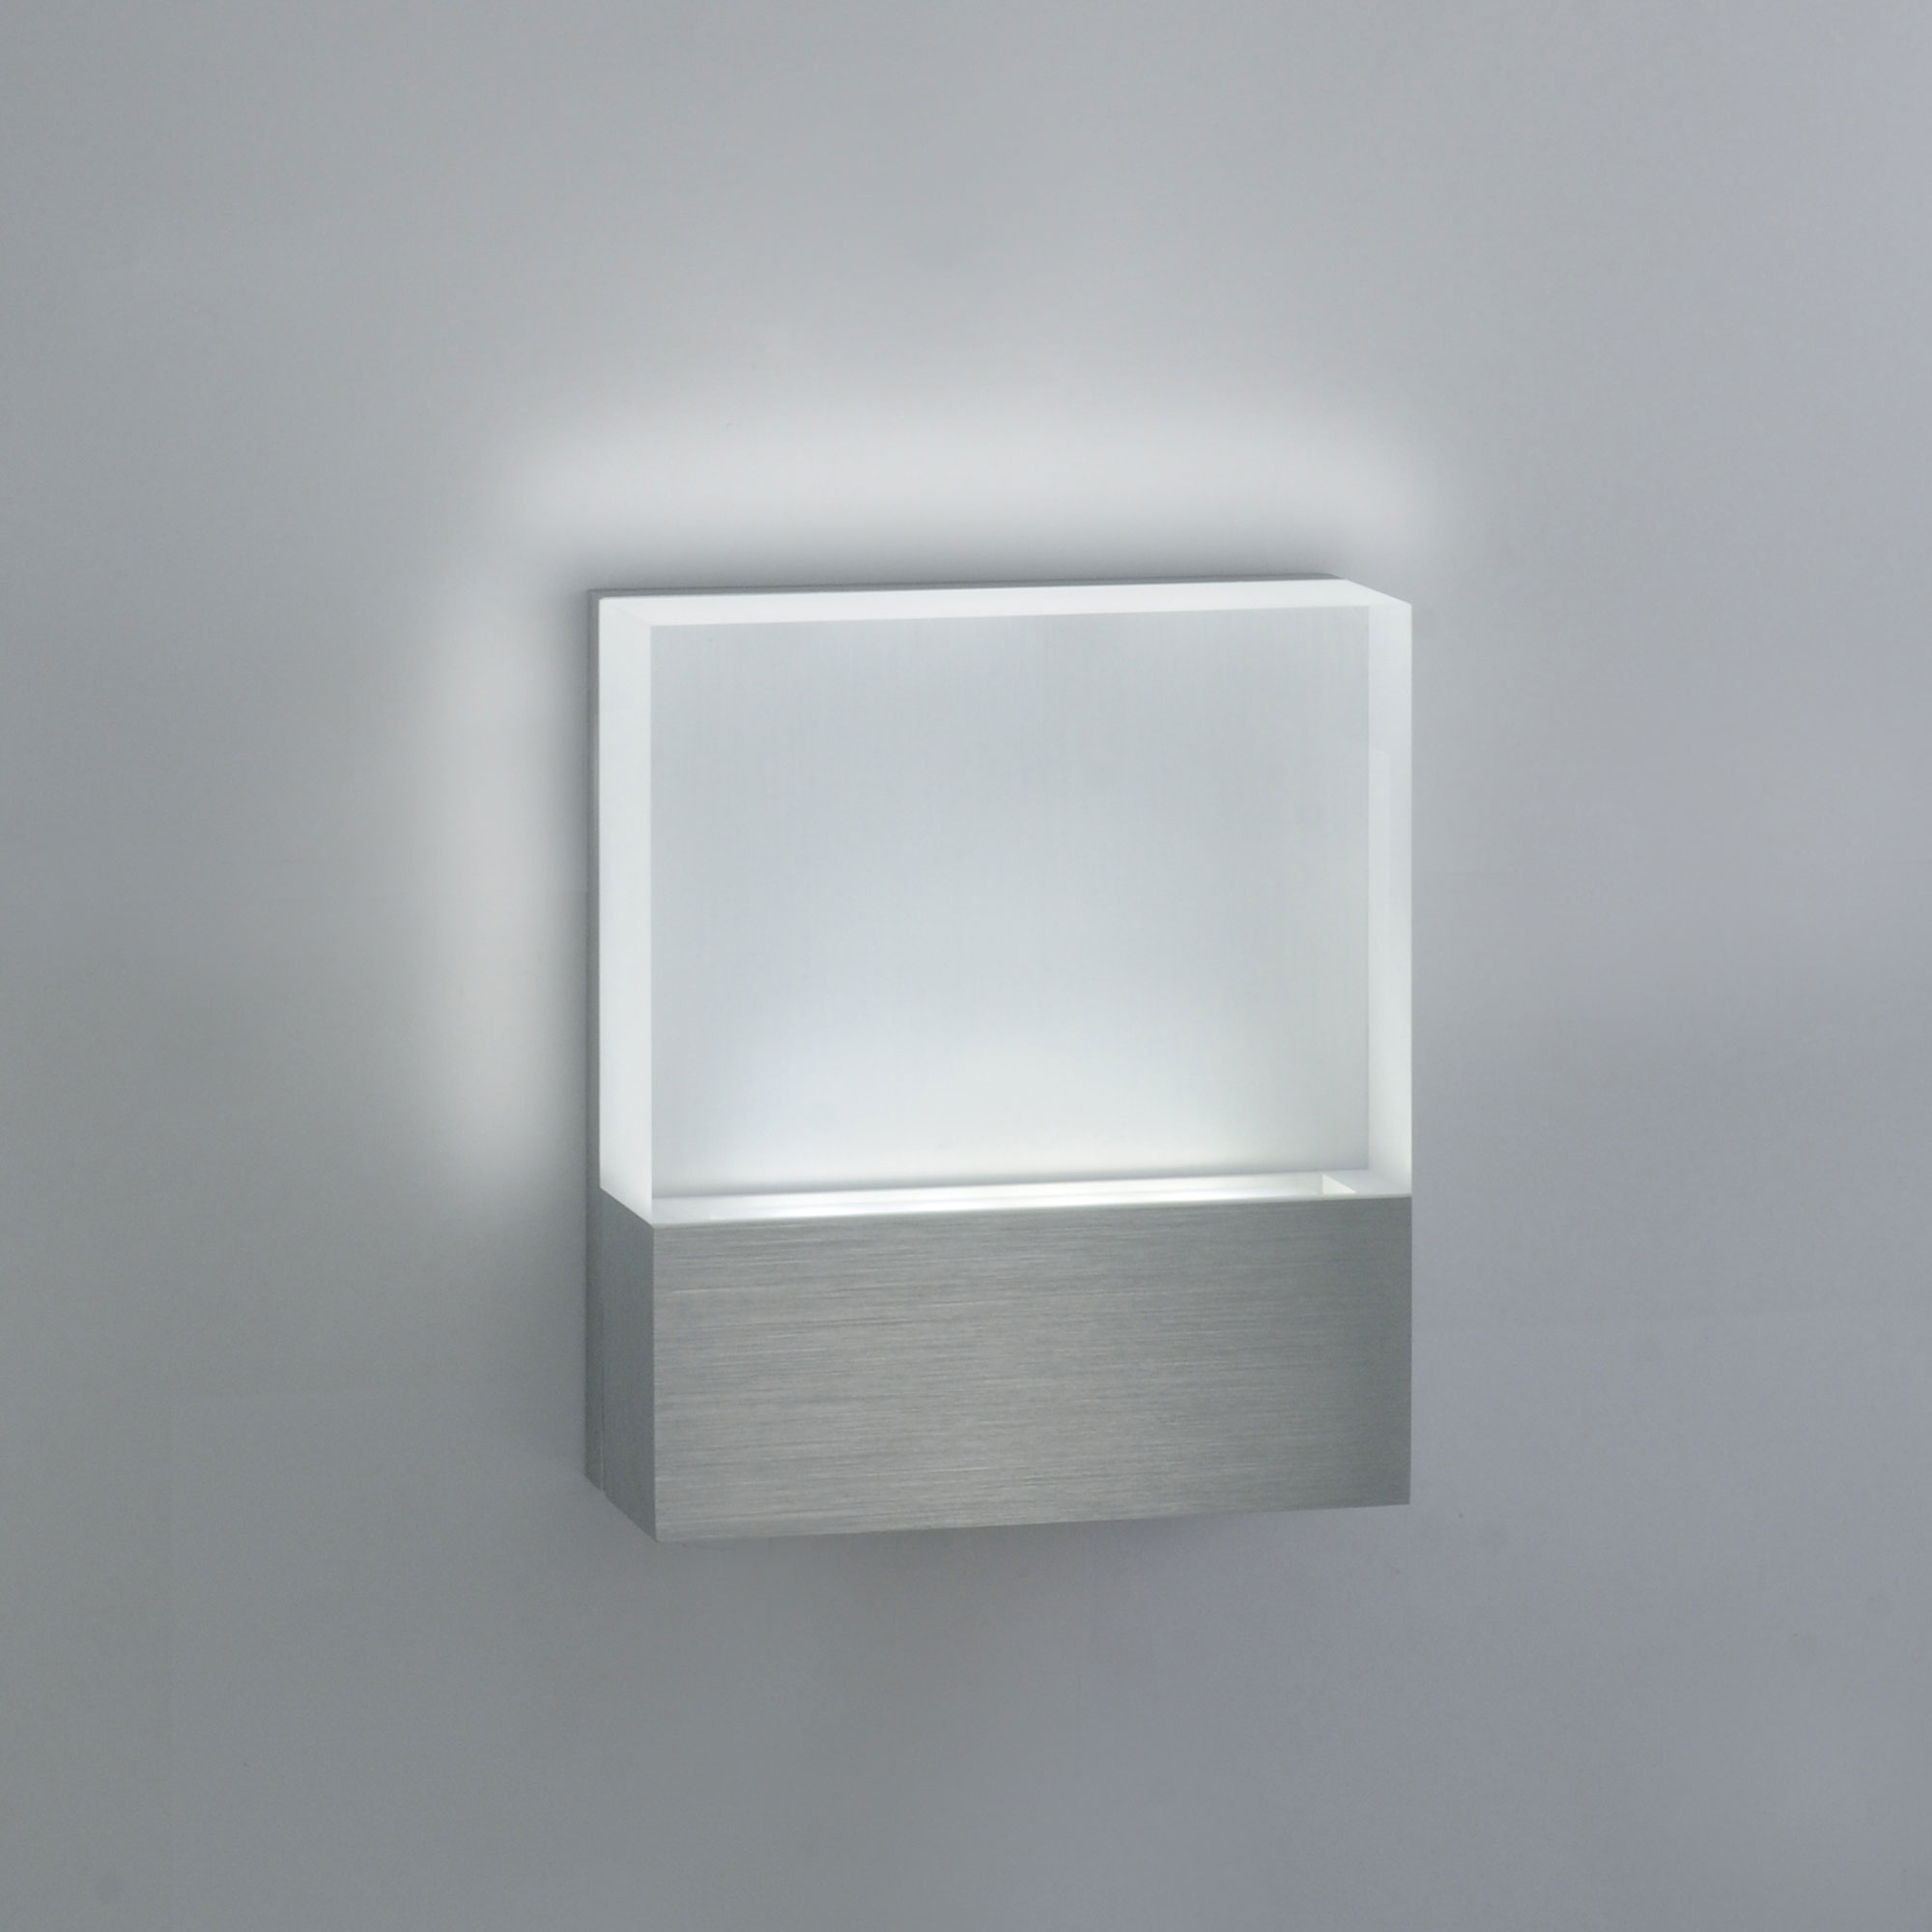 Led elv dimmable wall sconce by pureedge lighting tv w l1 elv sa tv led elv dimmable wall sconce by pureedge lighting tv w l1 elv sa arubaitofo Images